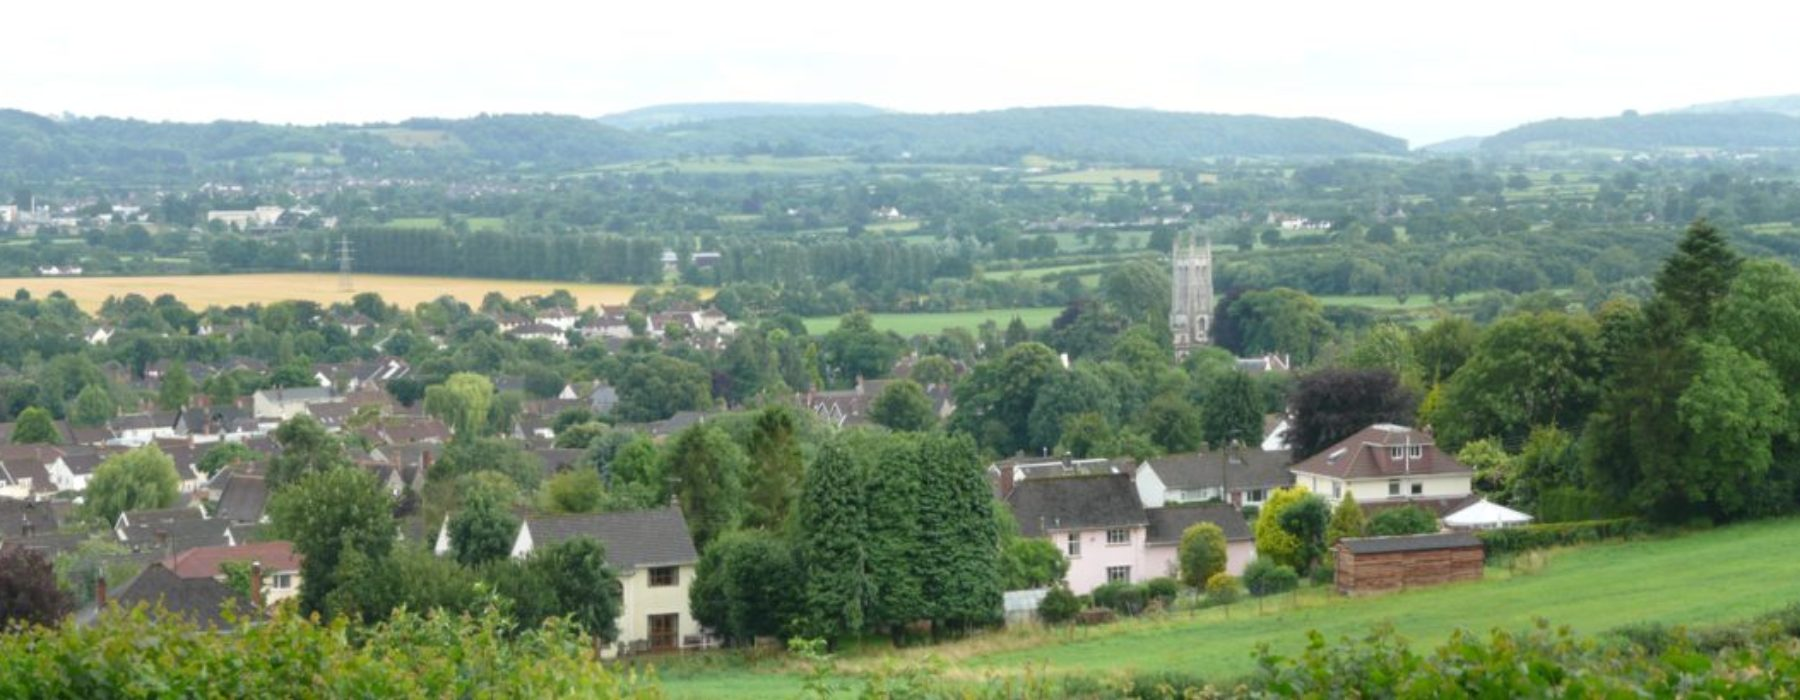 View of Wrington